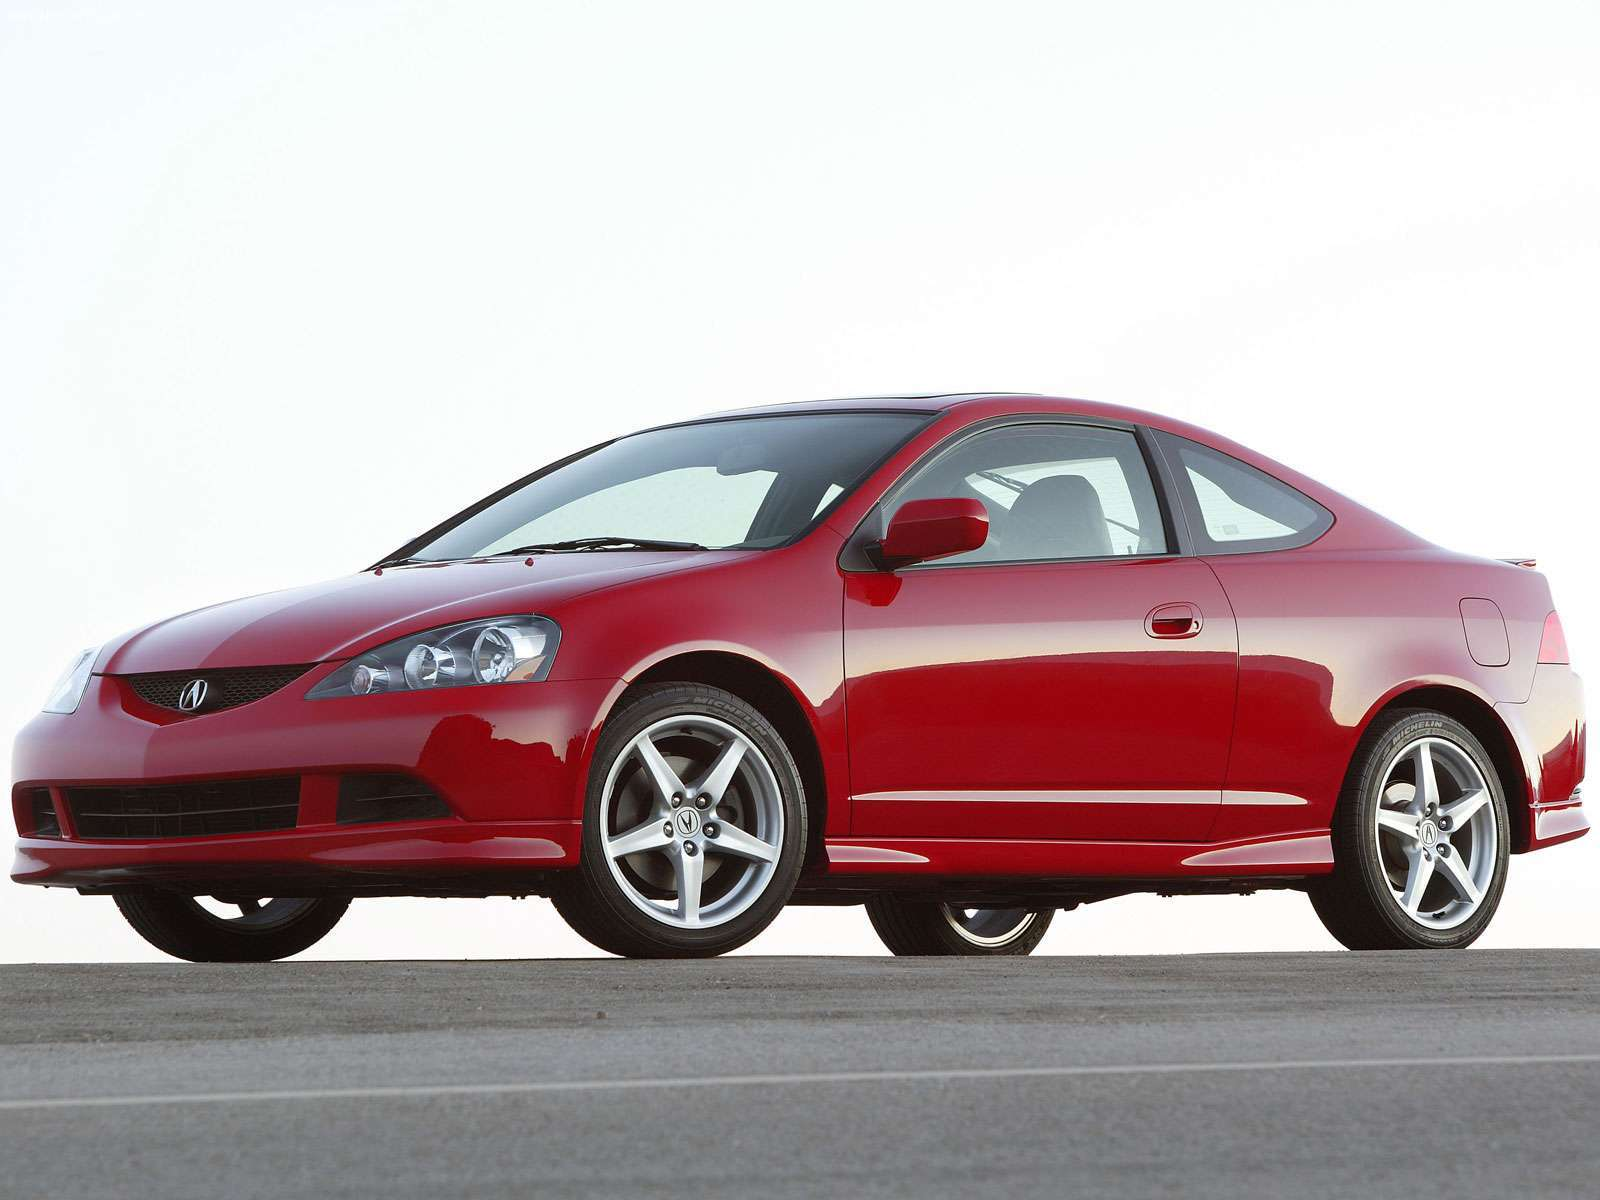 Acura RSX Coupe 2005